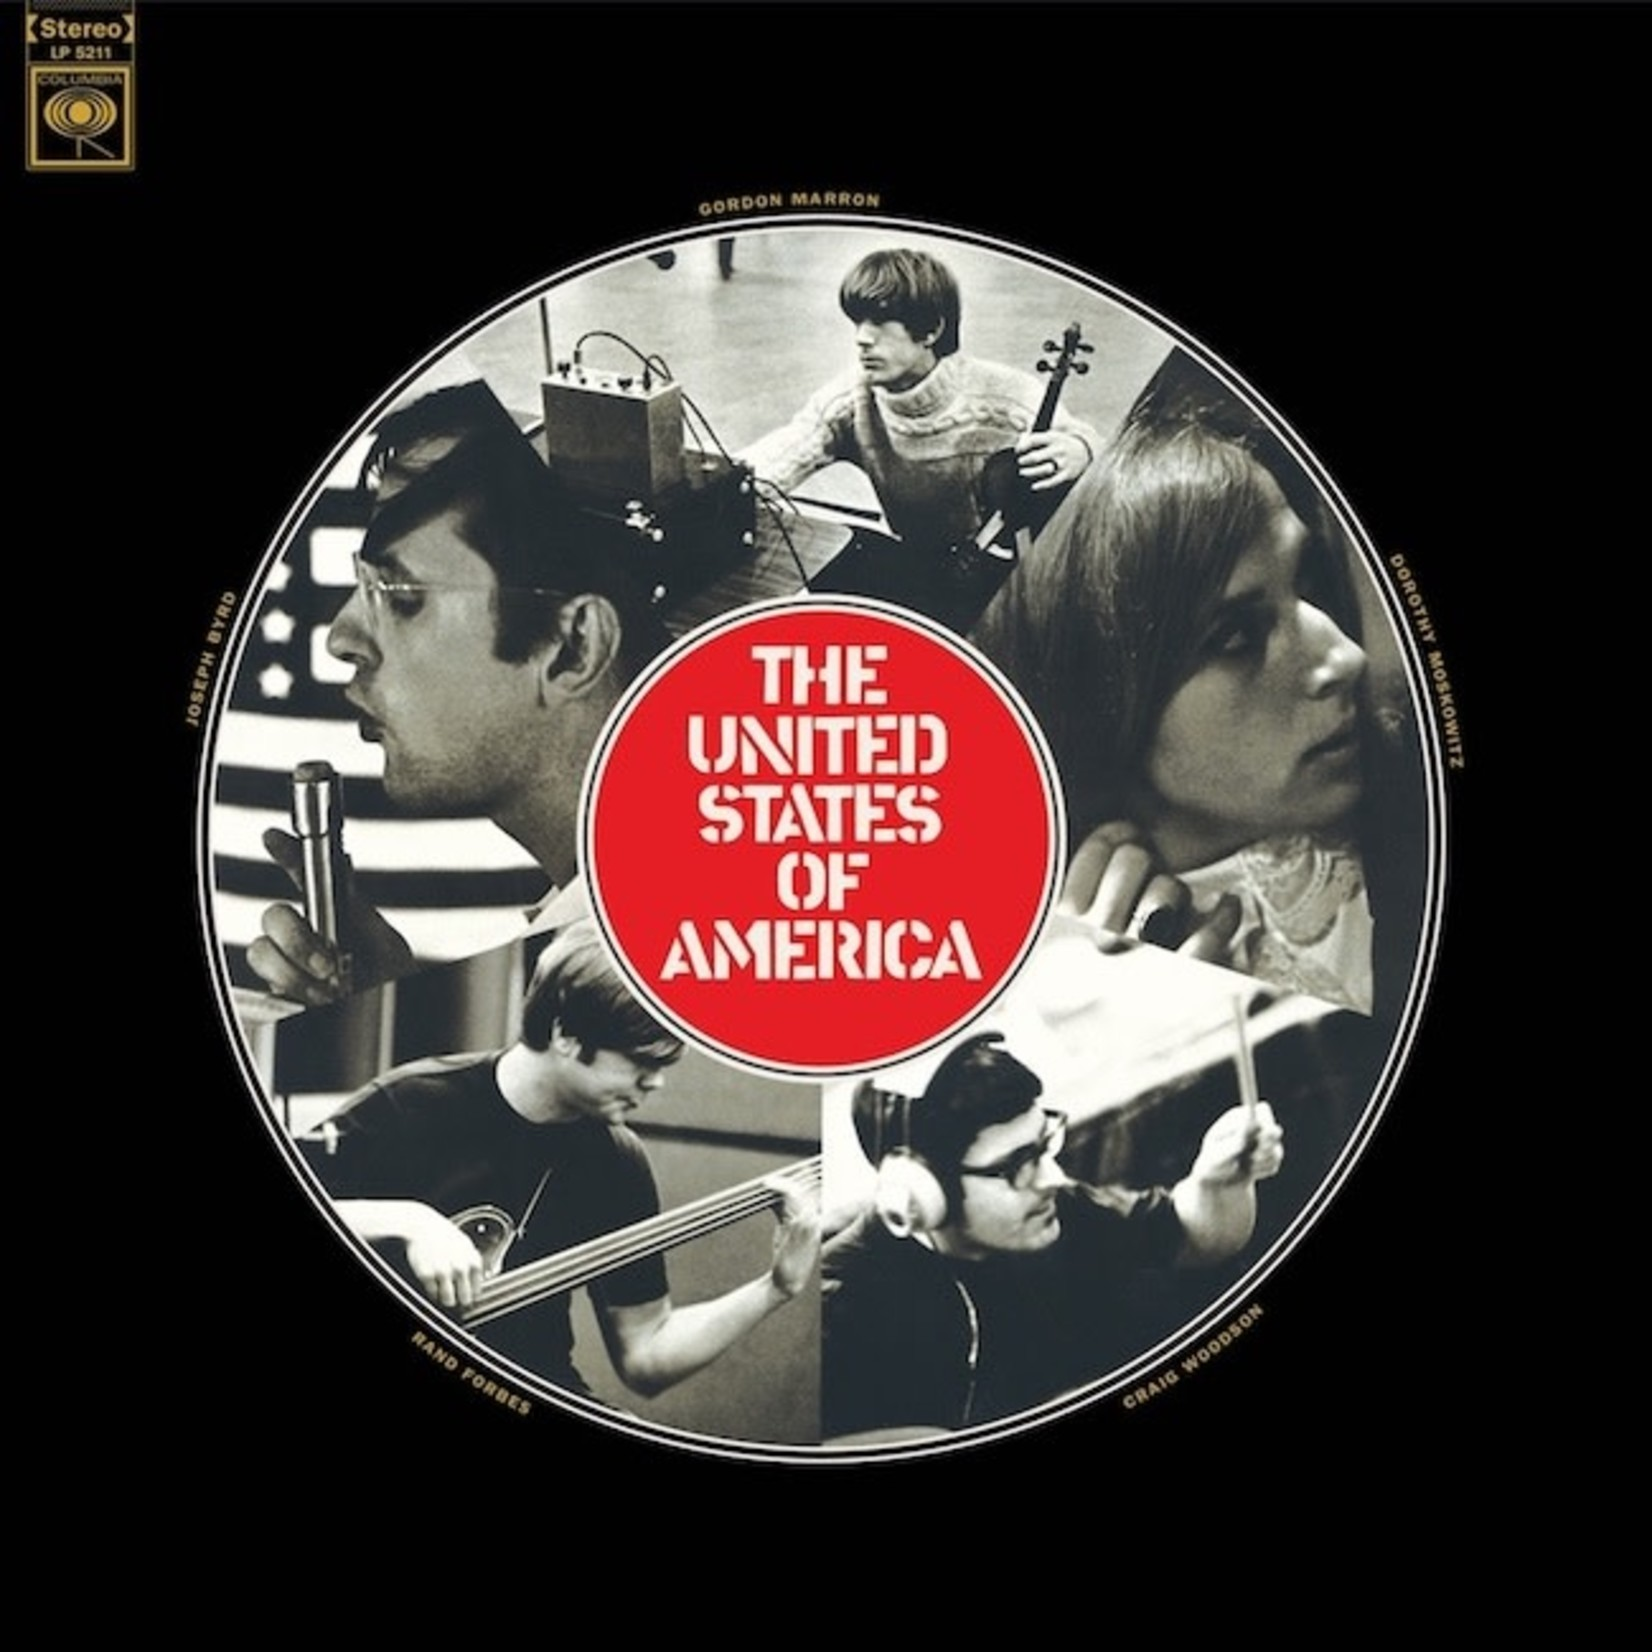 [New] United States of America: self-titled (mono mix, clear vinyl)